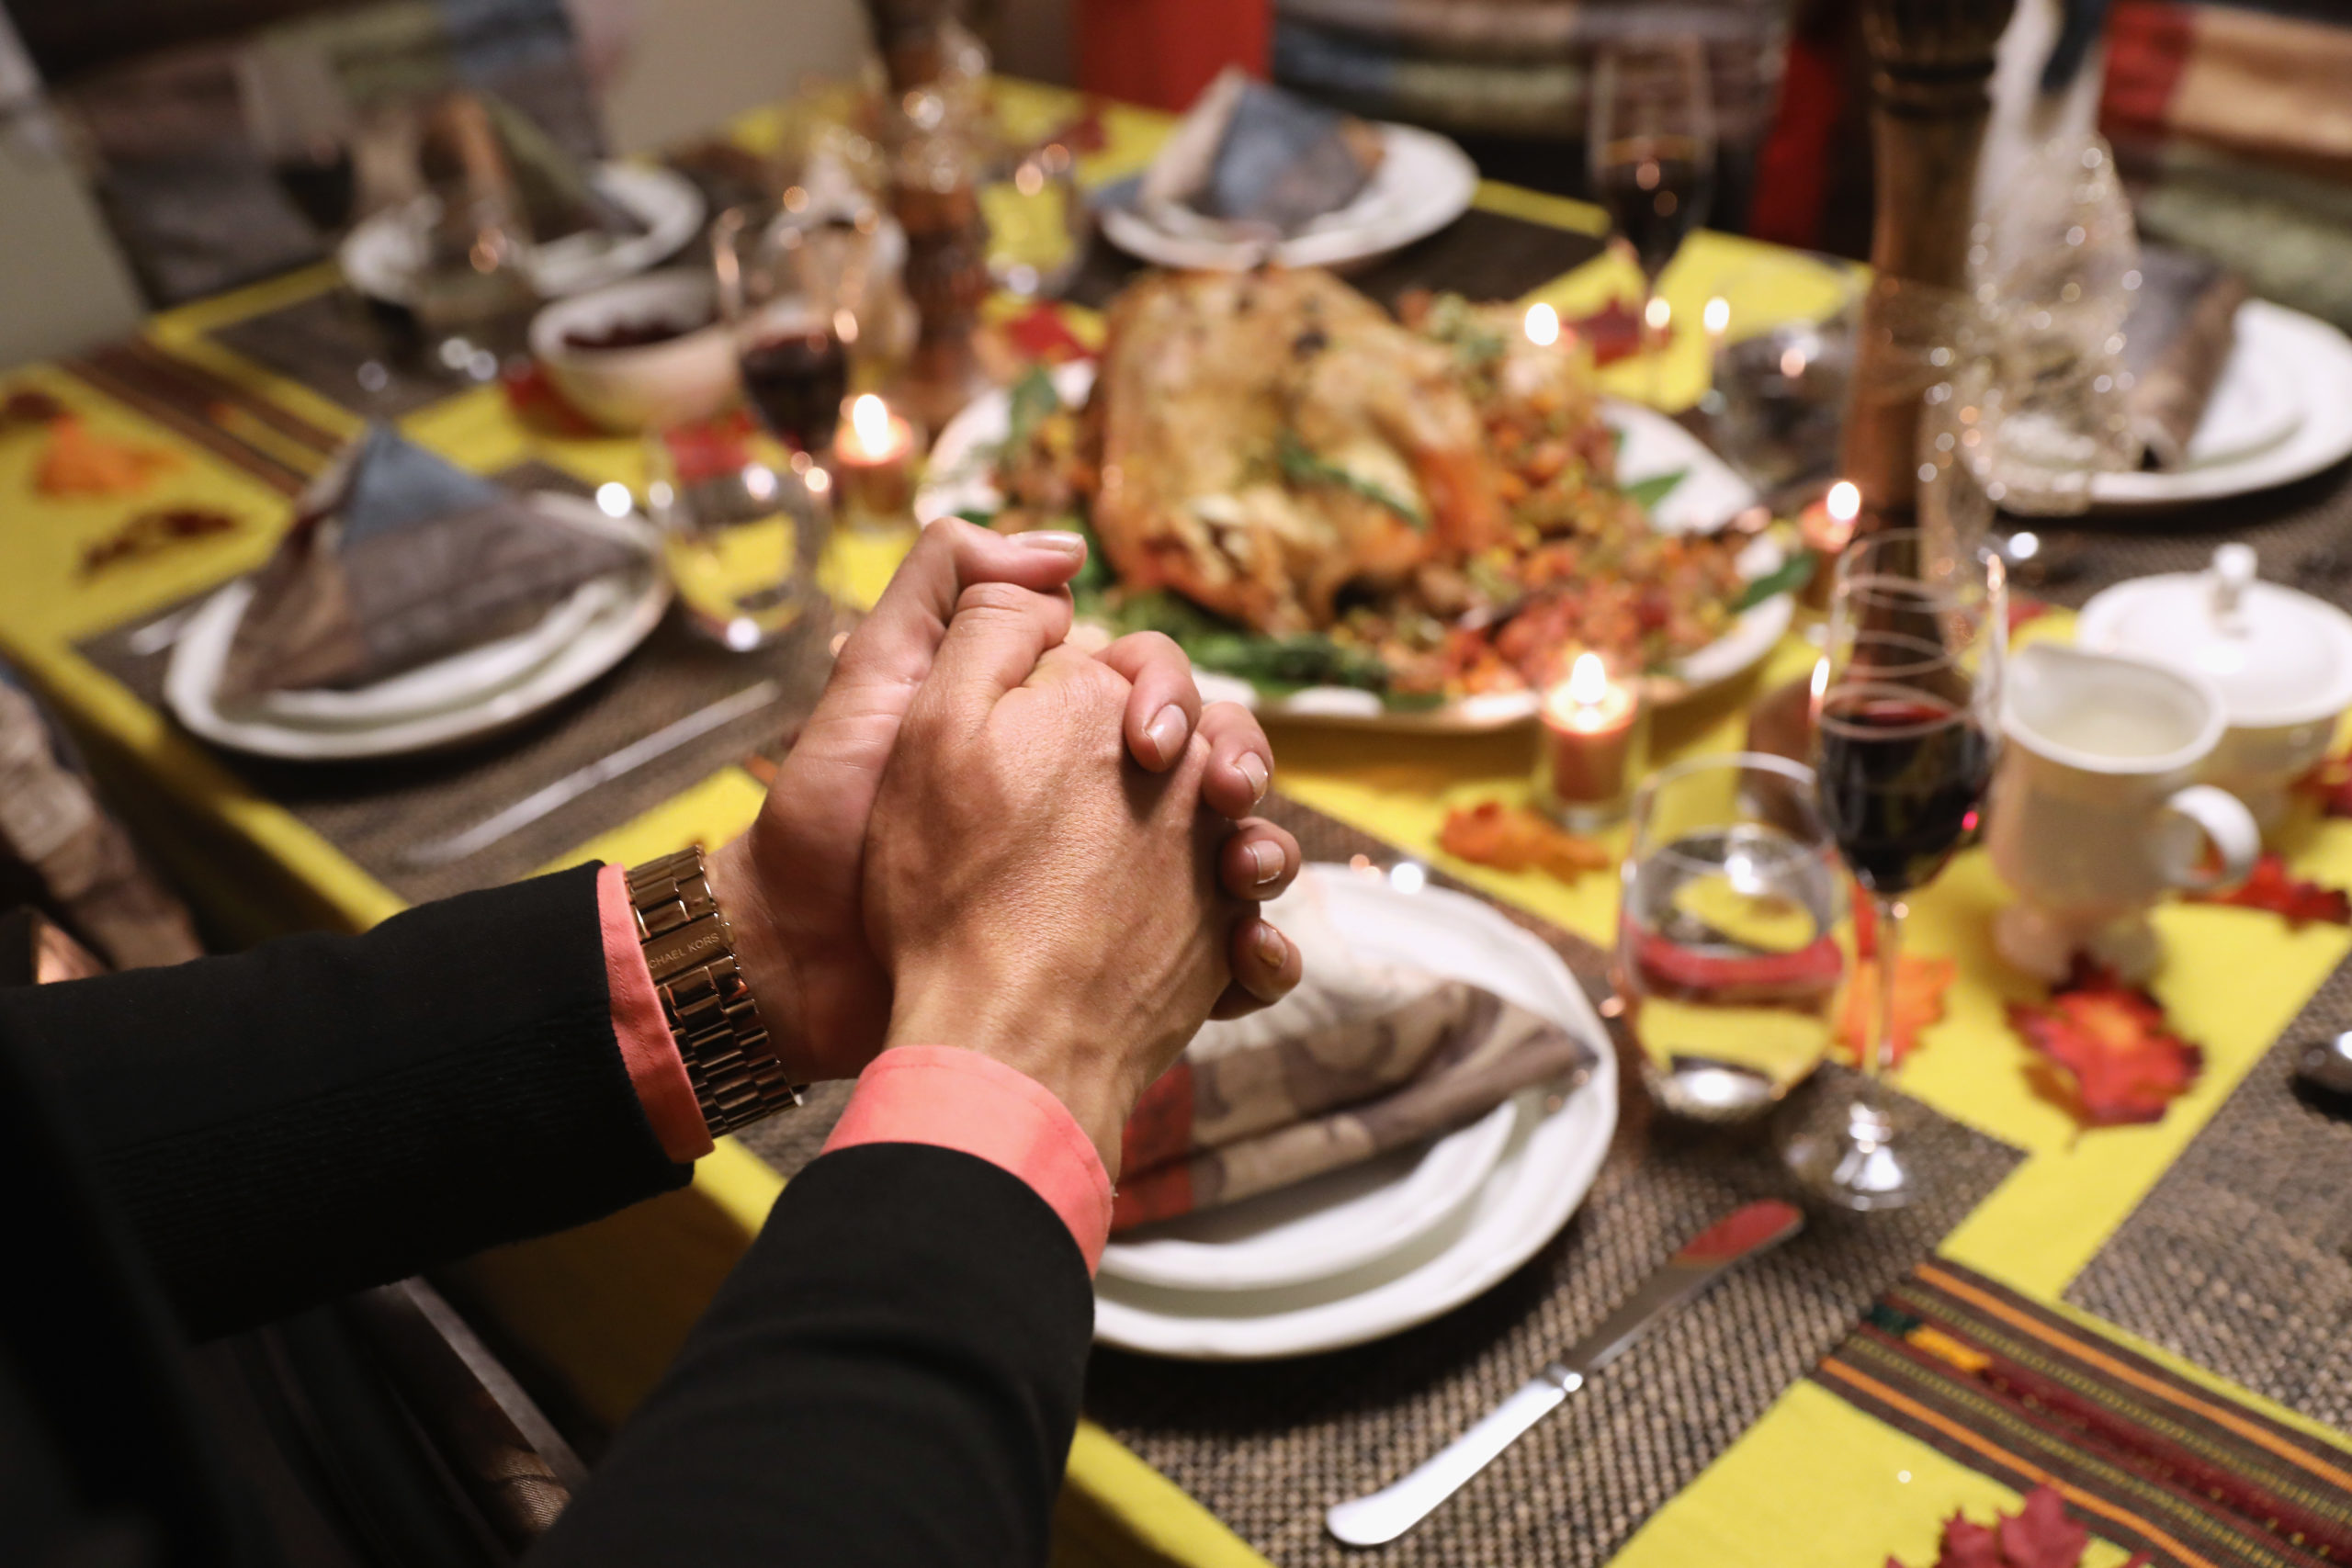 STAMFORD, CT - NOVEMBER 24: Central American immigrants and their families pray before Thanksgiving dinner on November 24, 2016 in Stamford, Connecticut. Family and friends, some of them U.S. citizens, others on work visas and some undocumented immigrants came together in an apartment to celebrate the American holiday with turkey and Latin American dishes. They expressed concern with the results of the U.S. Presidential election of president-elect Donald Trump, some saying their U.S.-born children fear the possibilty their parents will be deported after Trump's inauguration. (Photo by John Moore/Getty Images)